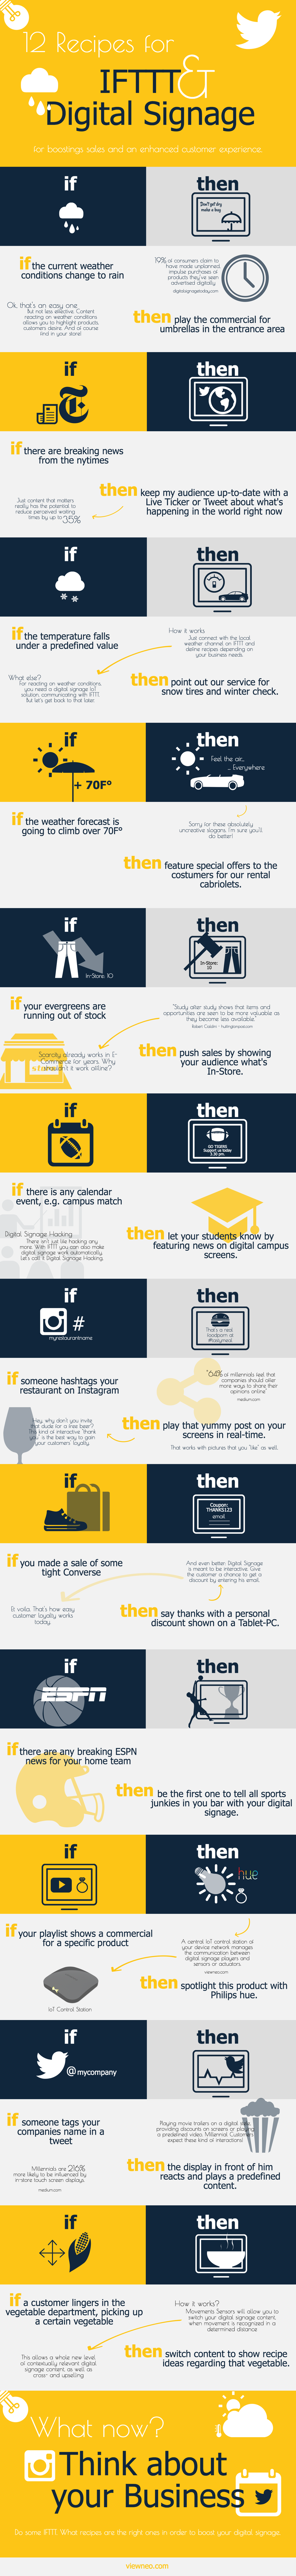 IFTTT and Digital Signage Infographic, 12 Recipes